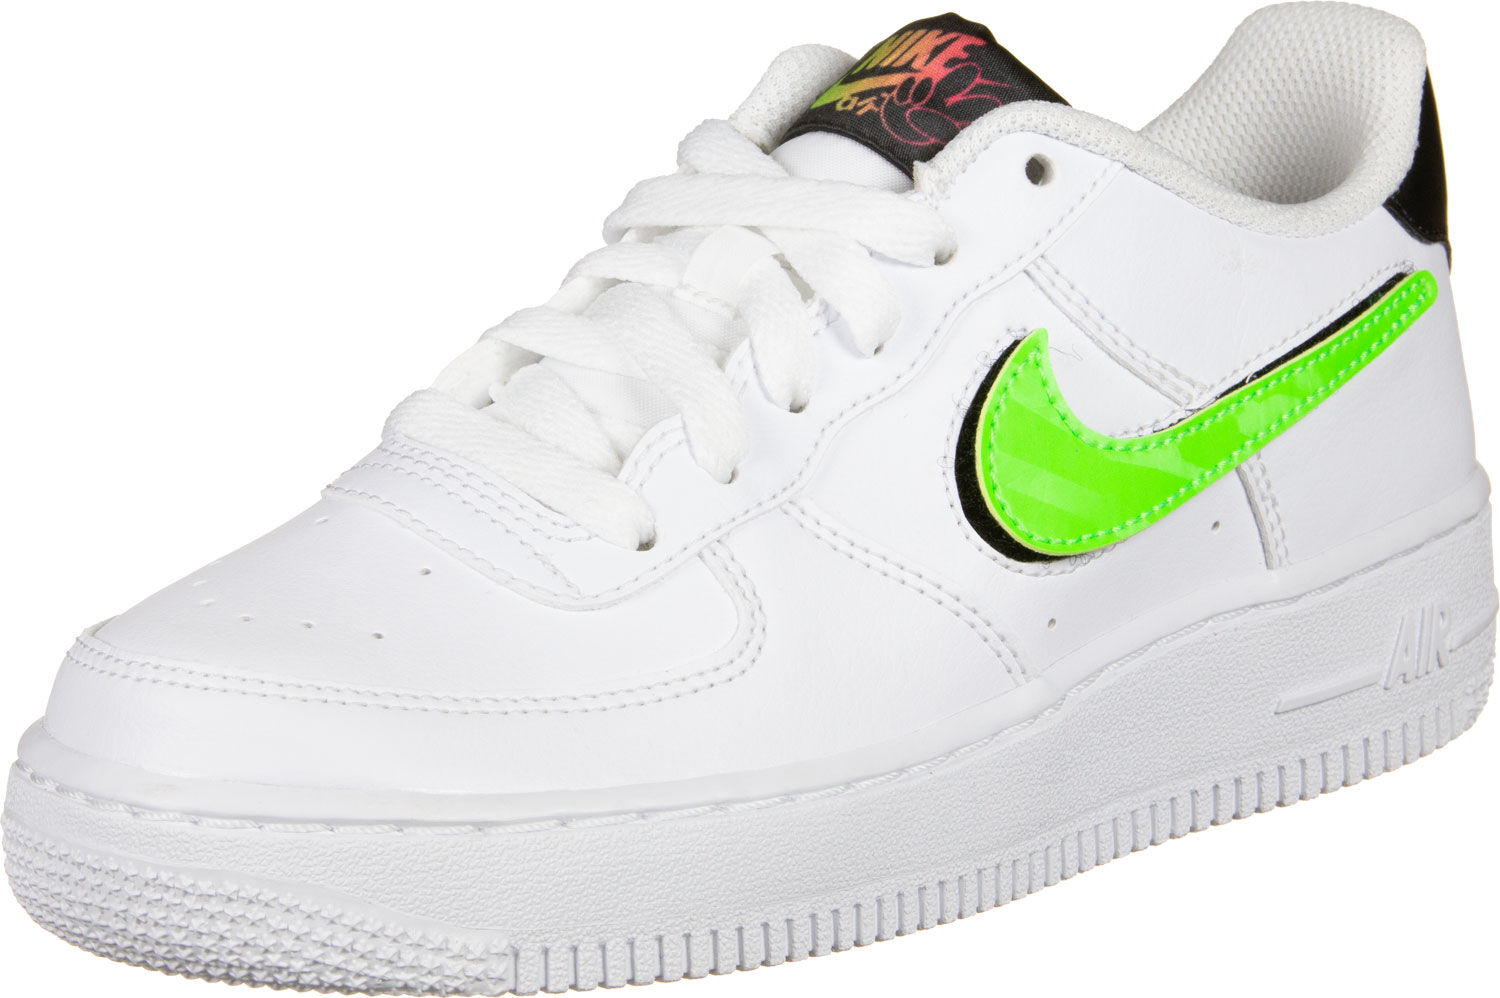 Nike Air Force 1 Lv8 3 Basketball Bei Stylefile